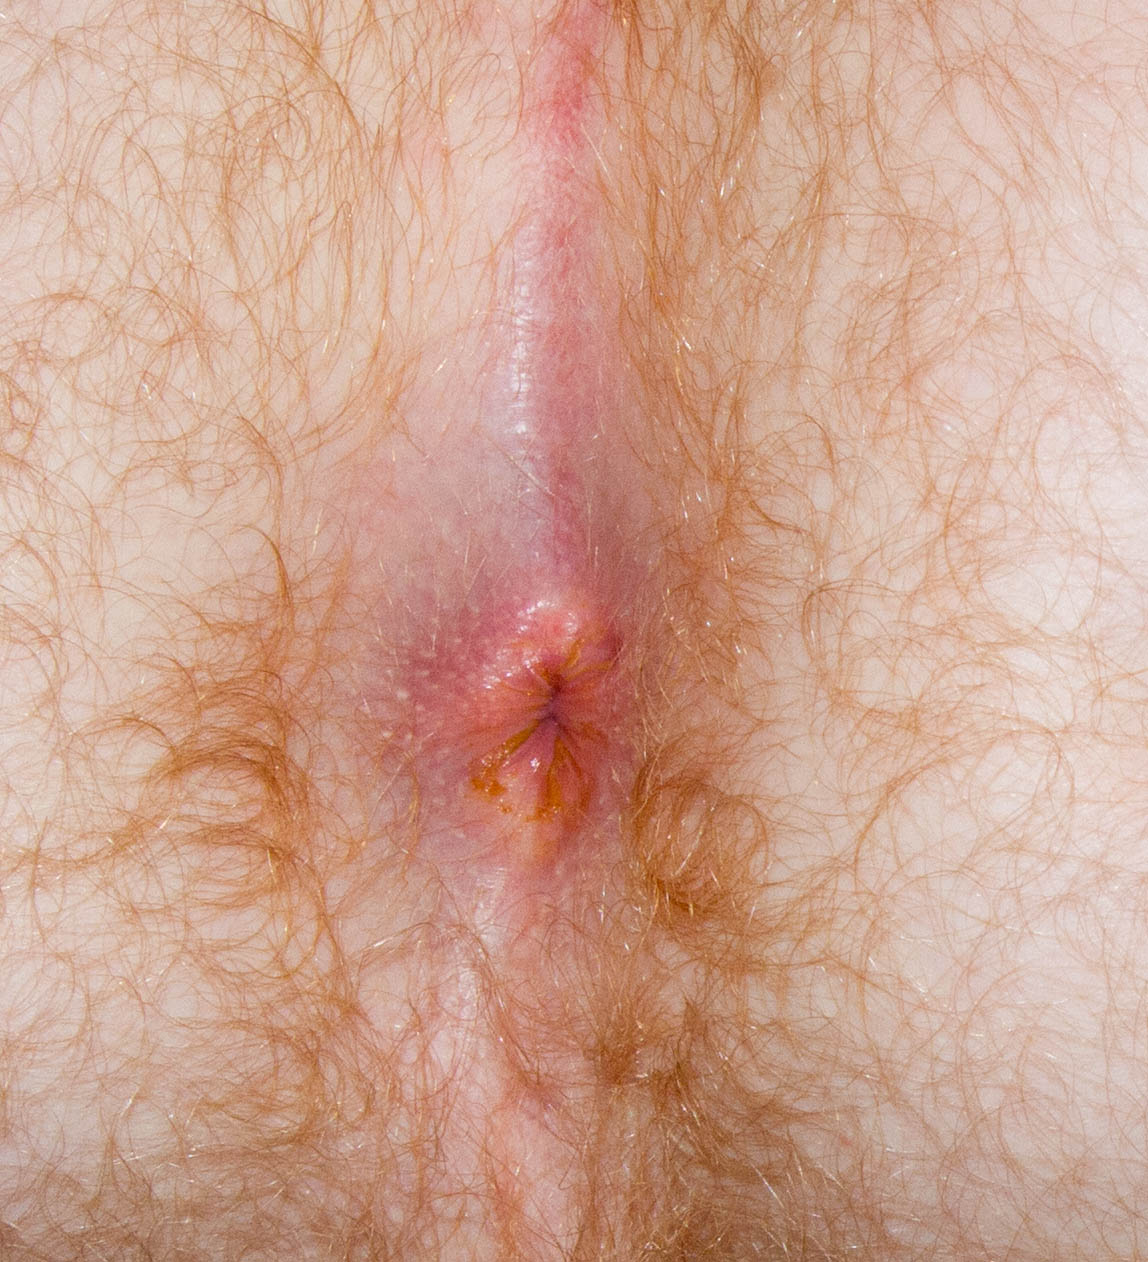 Causes of anal itching